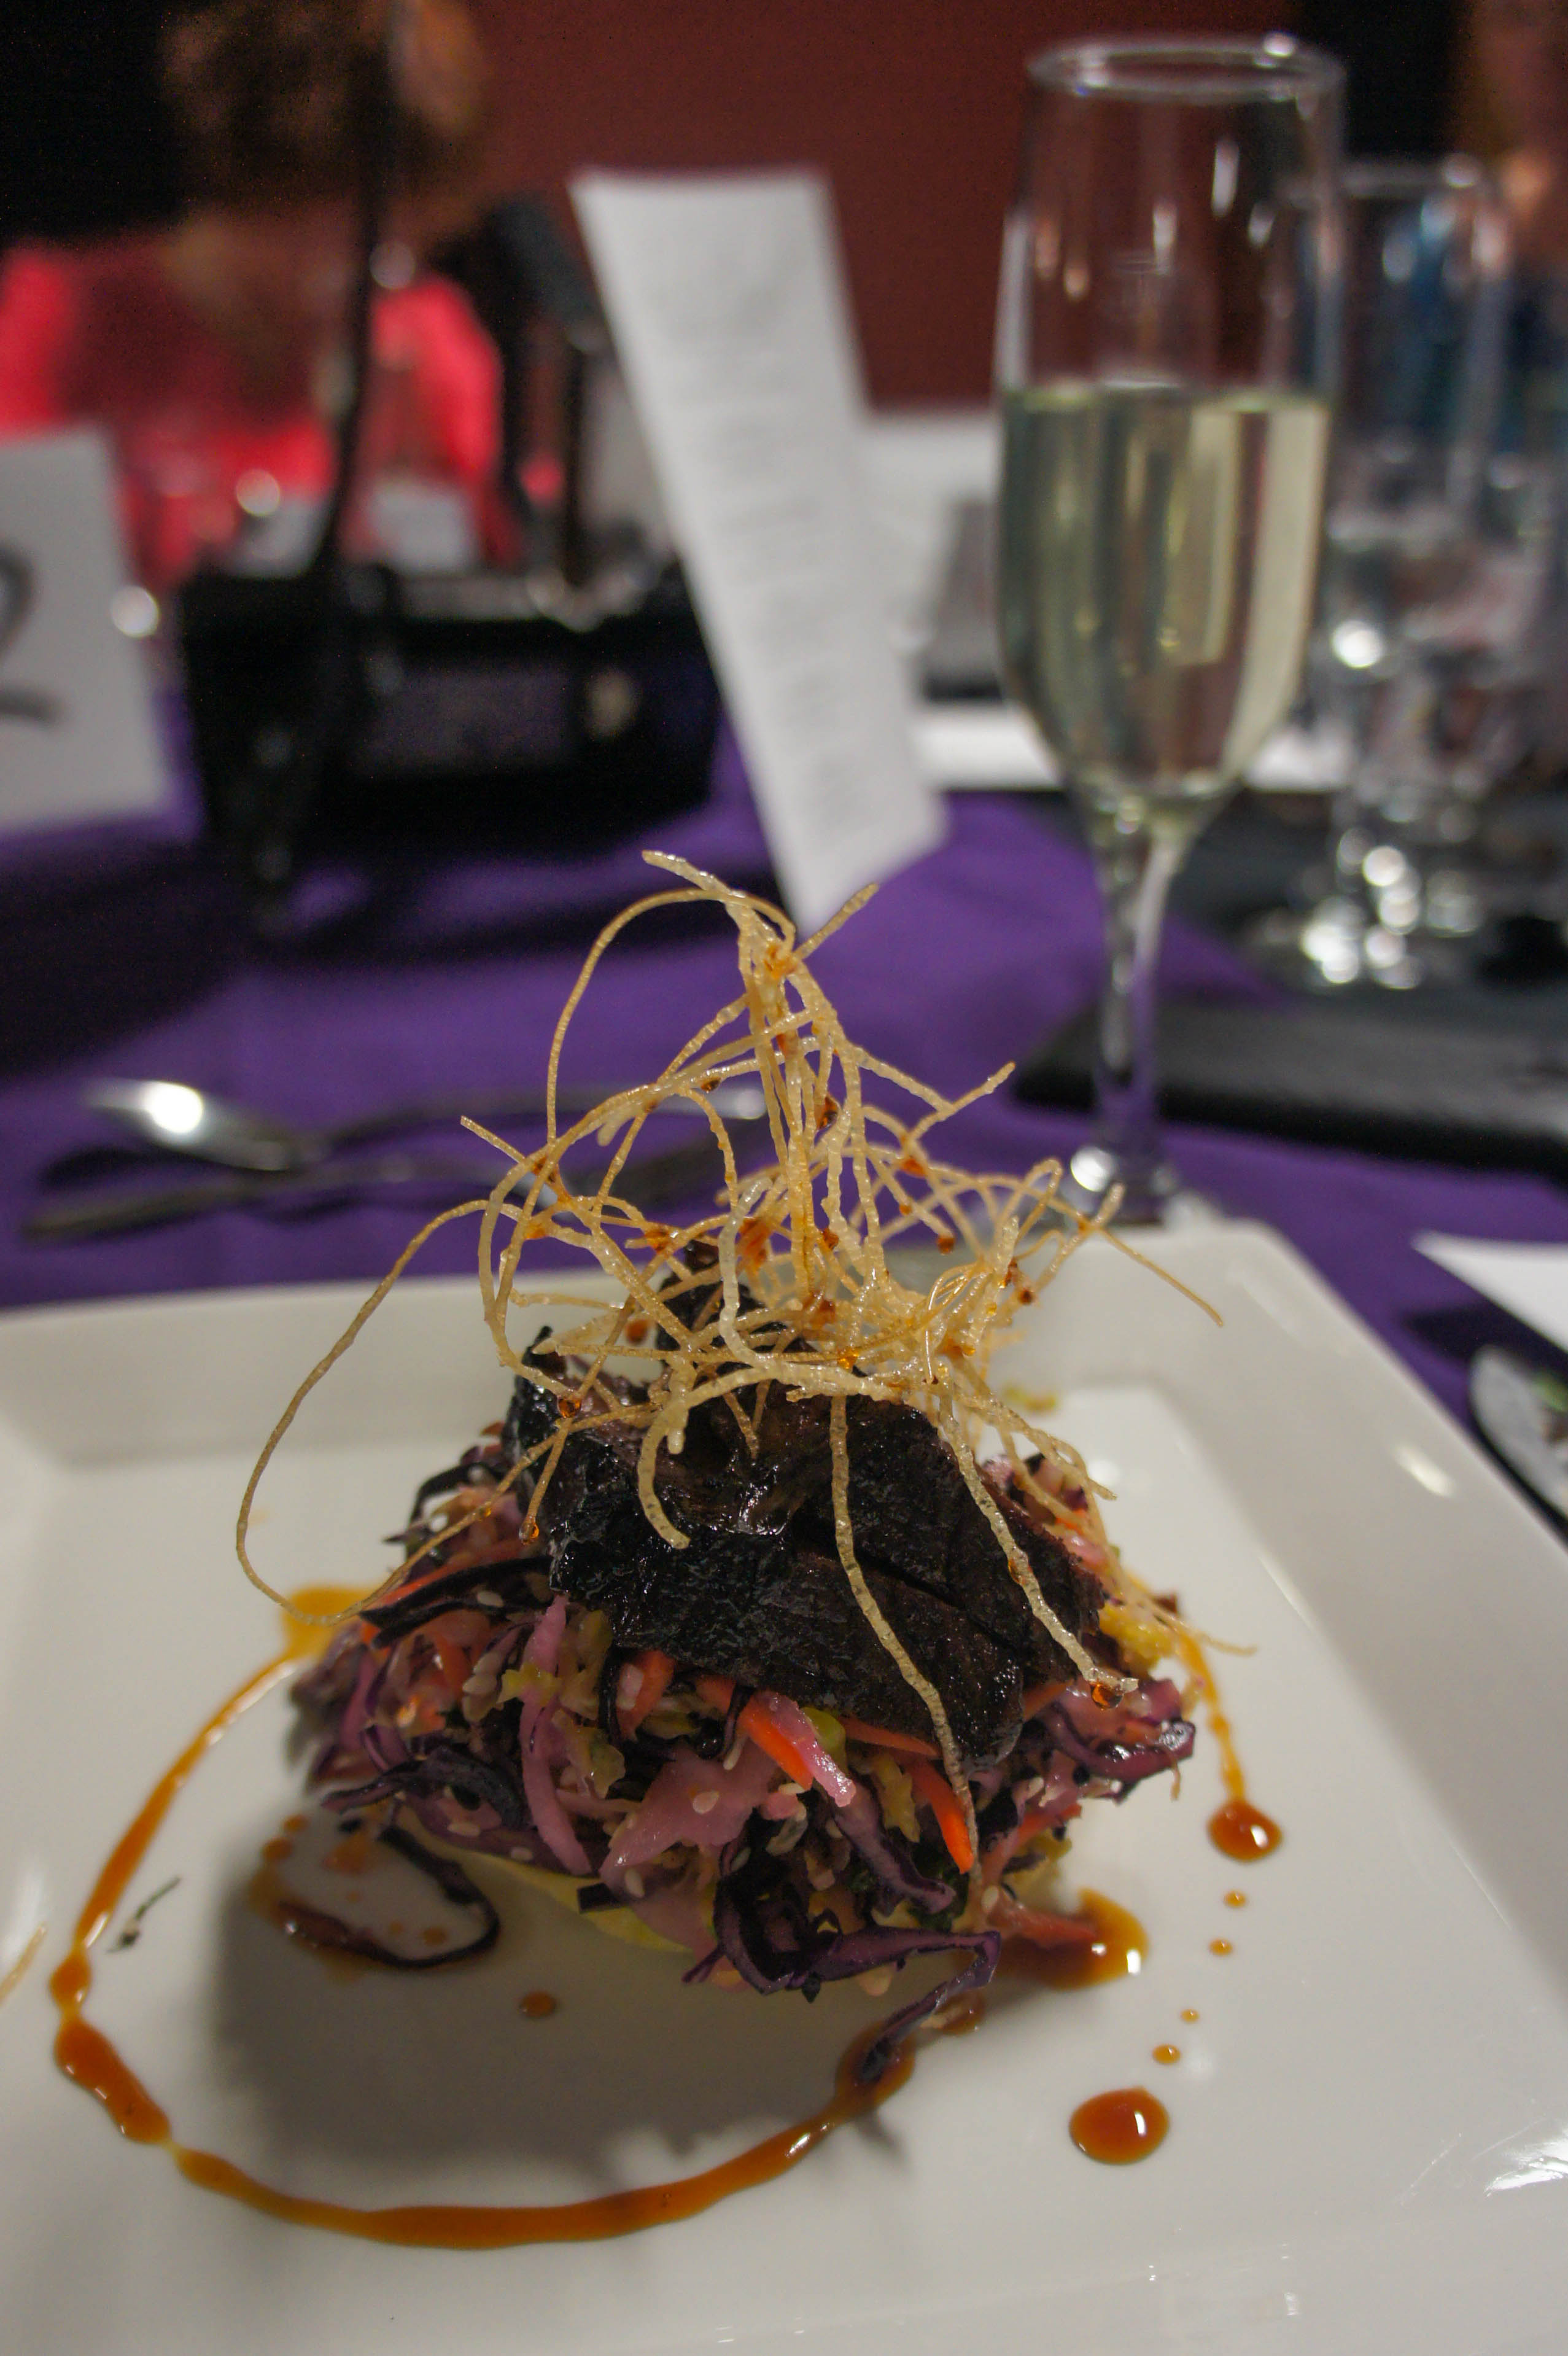 The 1990s were represented by this plate, prepared by Chef Chris Lord and students: beef shortrib, Asian slaw and scallion pancake. Photo by Katie Shapiro, Ottawa Magazine.